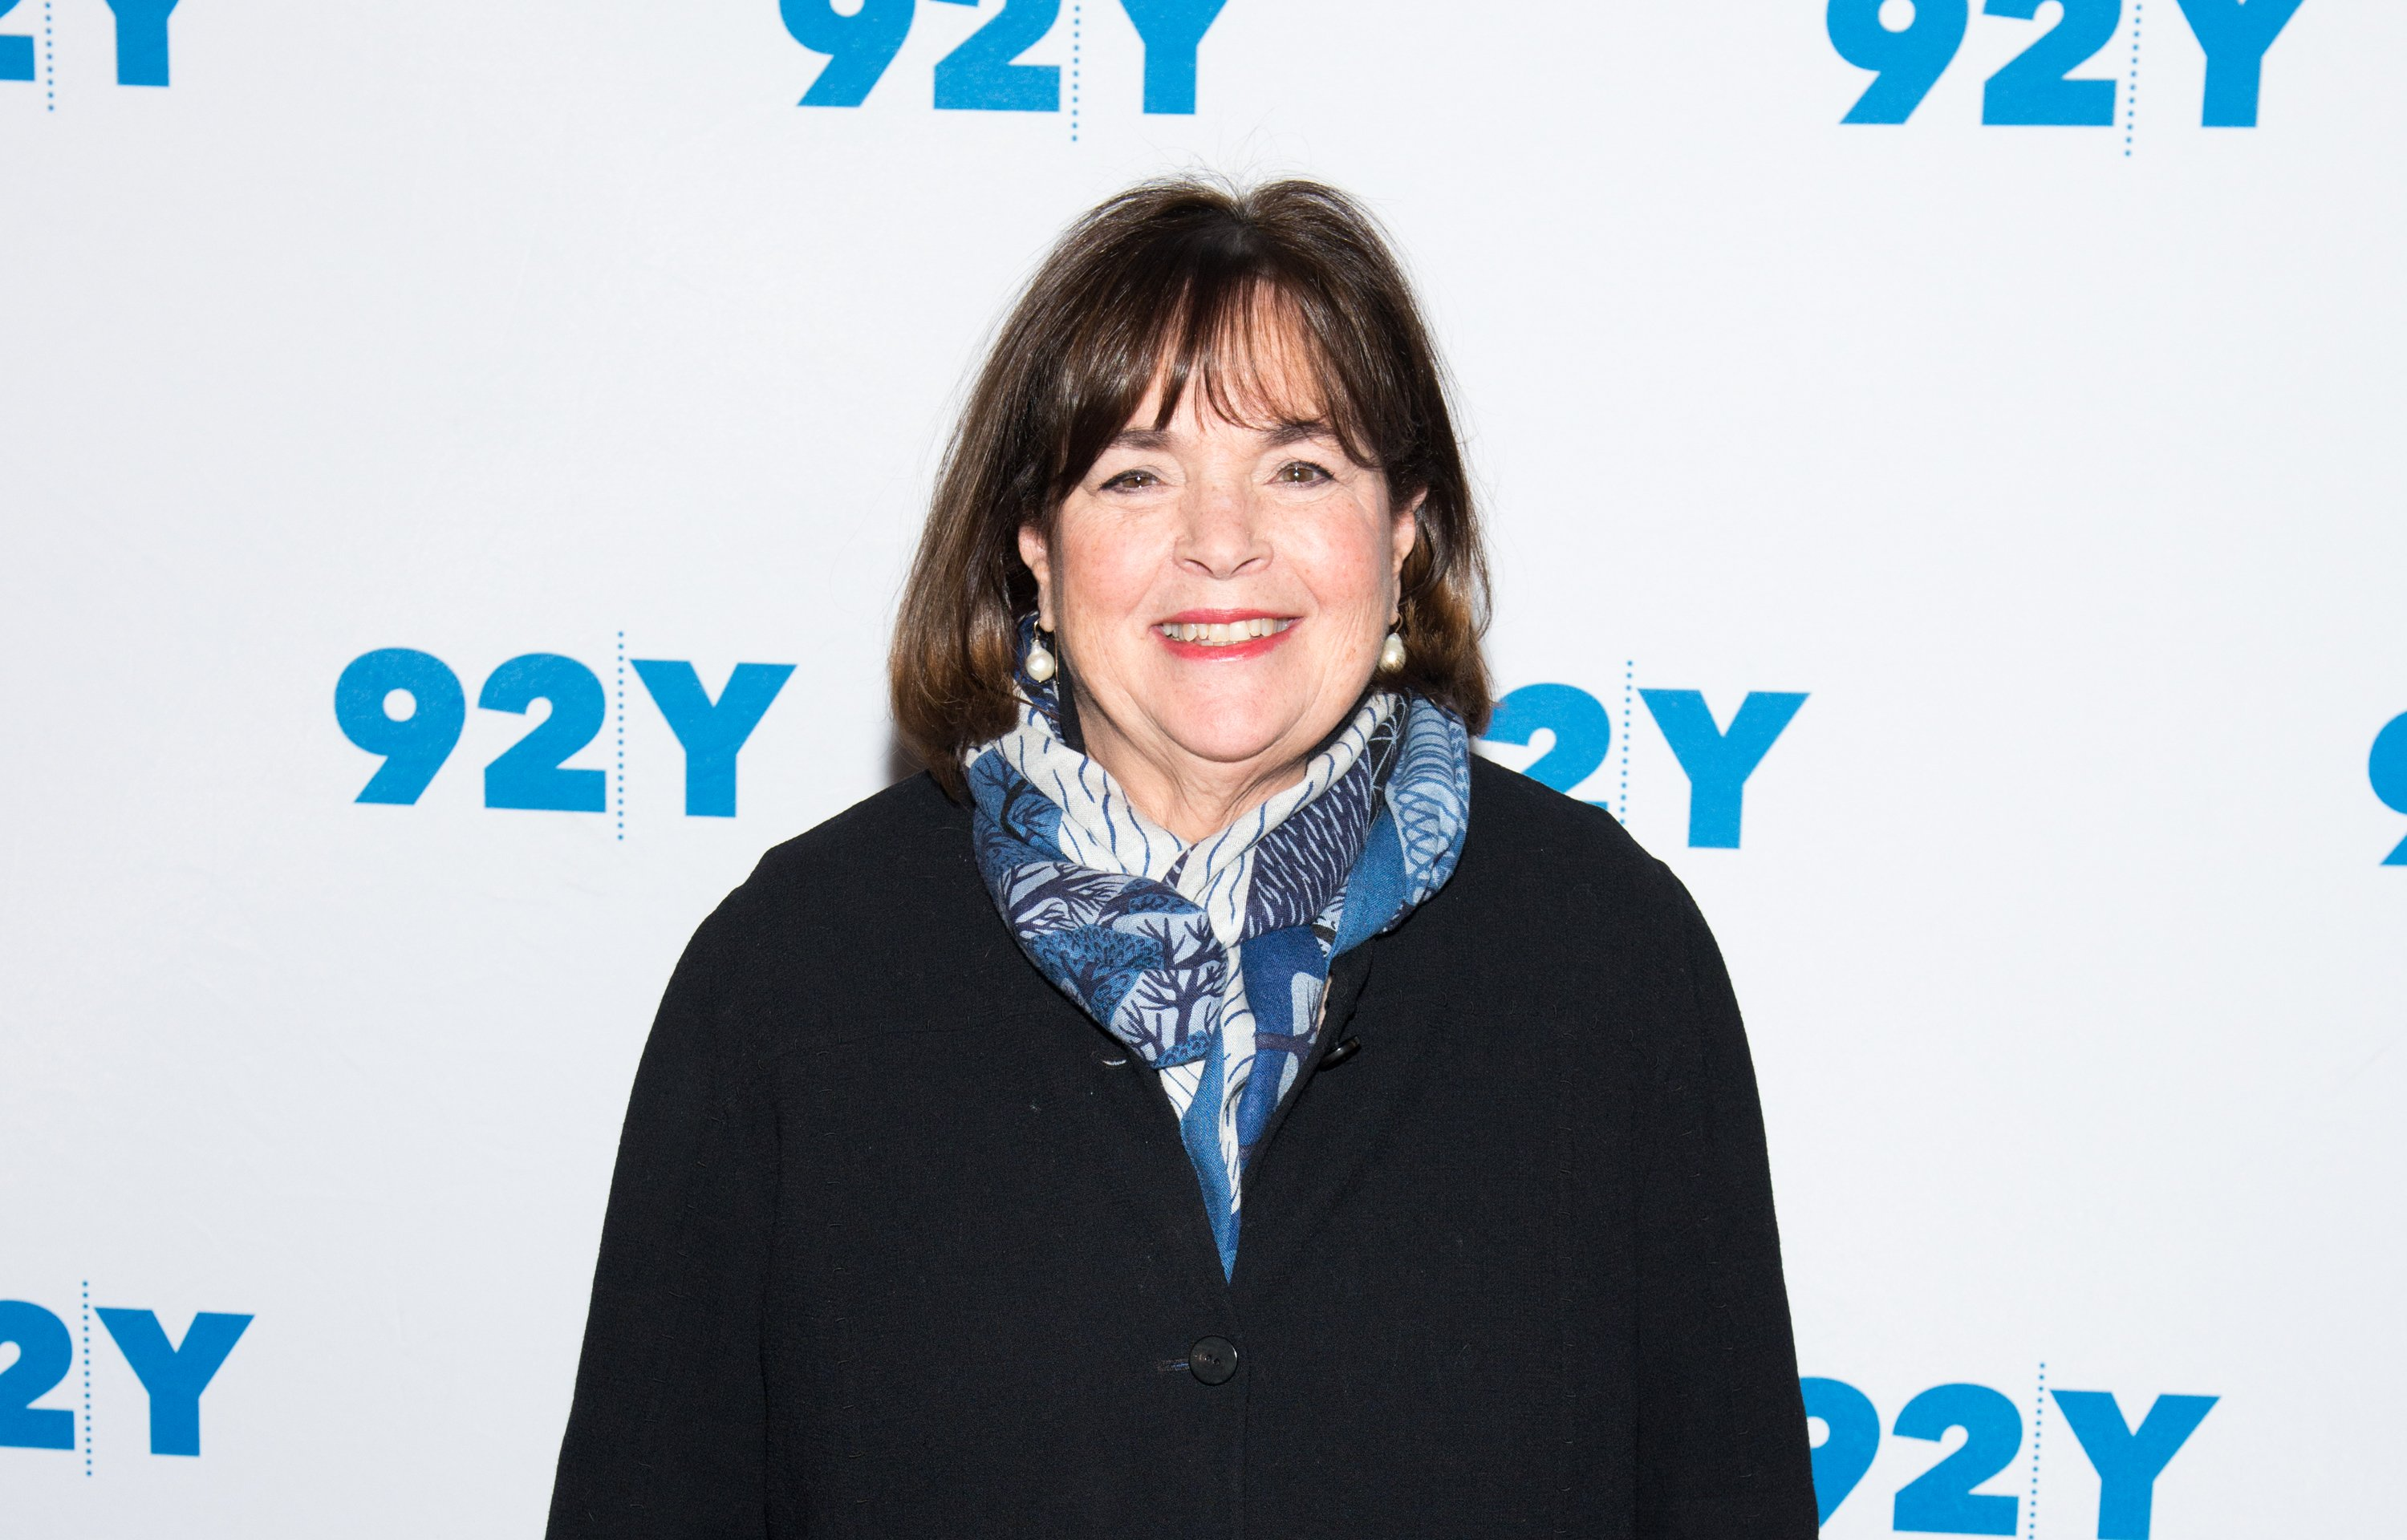 Ina Garten attends Ina Garten in Conversation with Danny Meyer at 92nd Street Y on January 31, 2017 in New York City | Photo: Getty Images